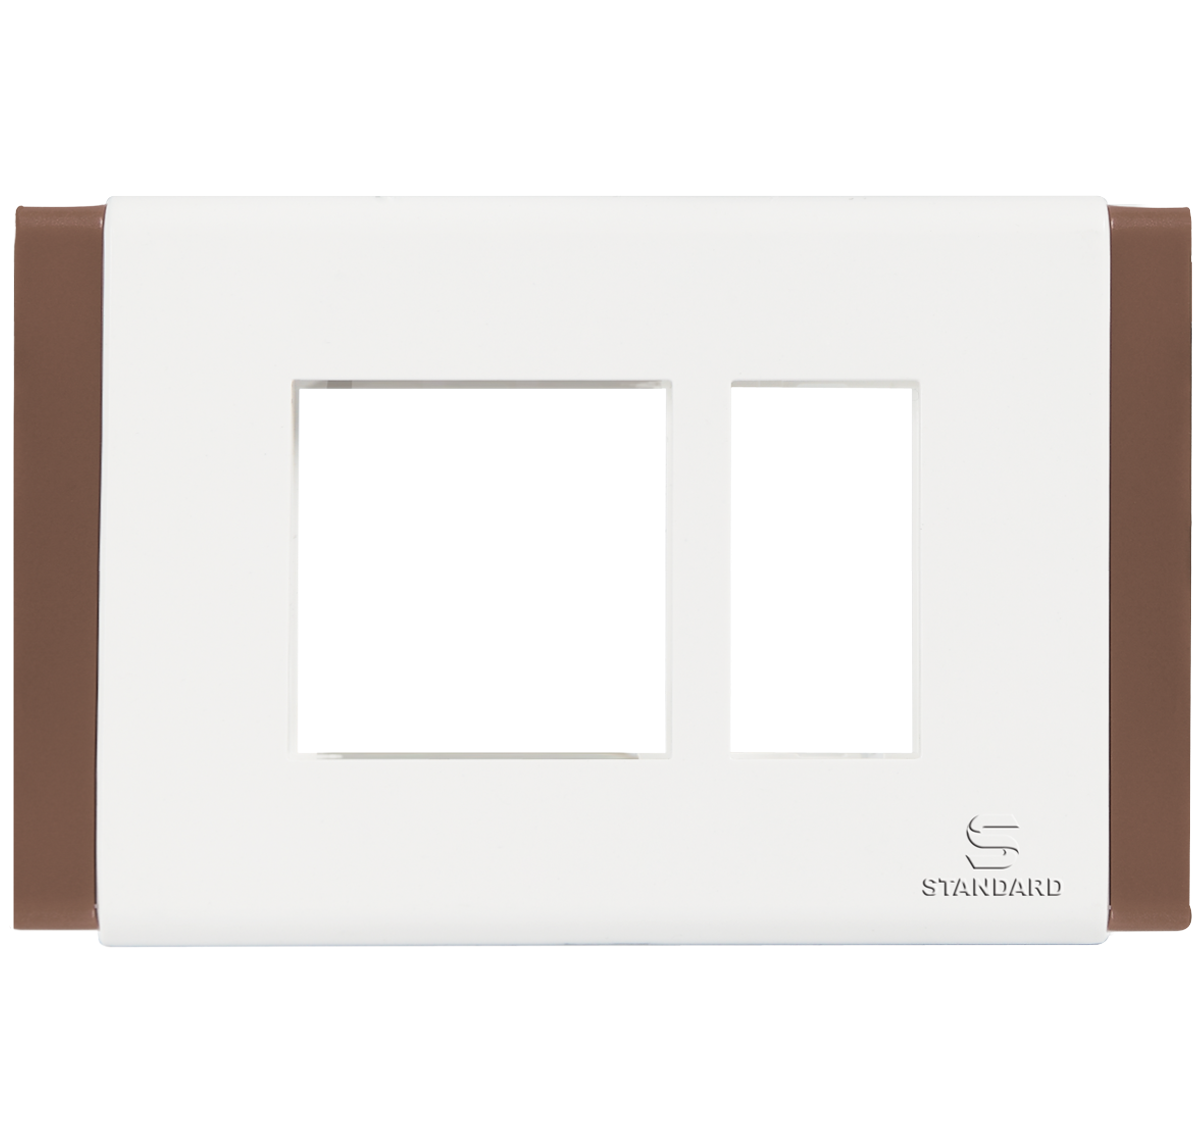 Standard - 3-m-caramel-brown-cover-plate